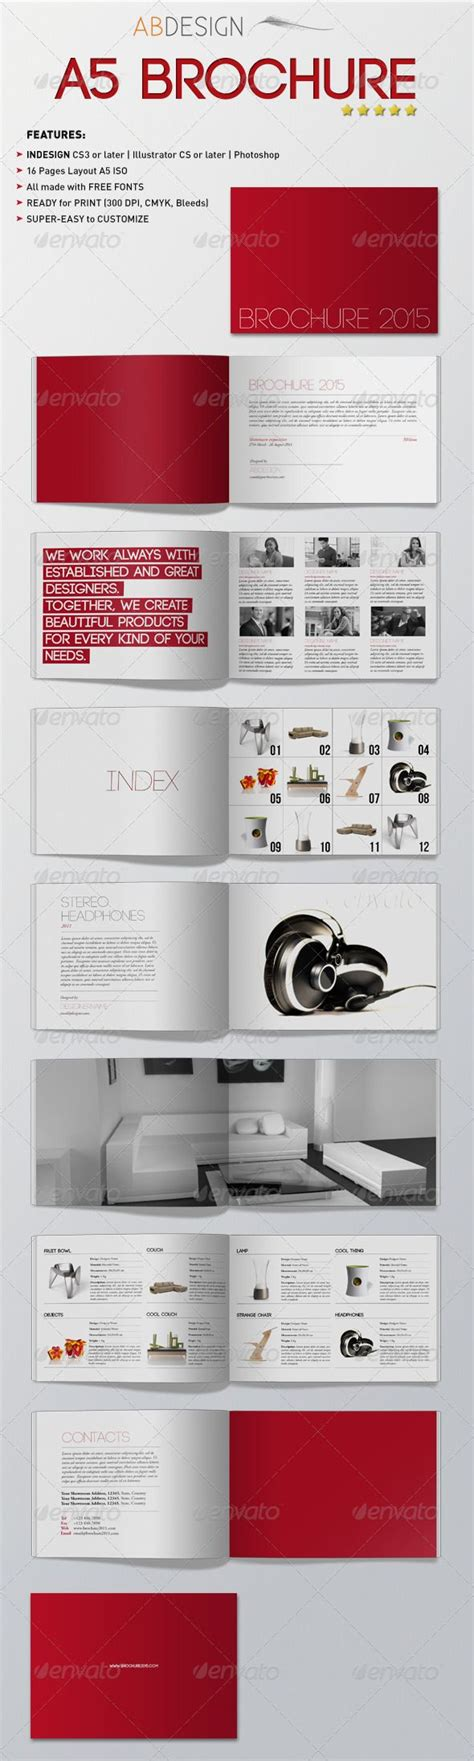 layout design inspiration brochure 145 best images about magazine and brochure layout